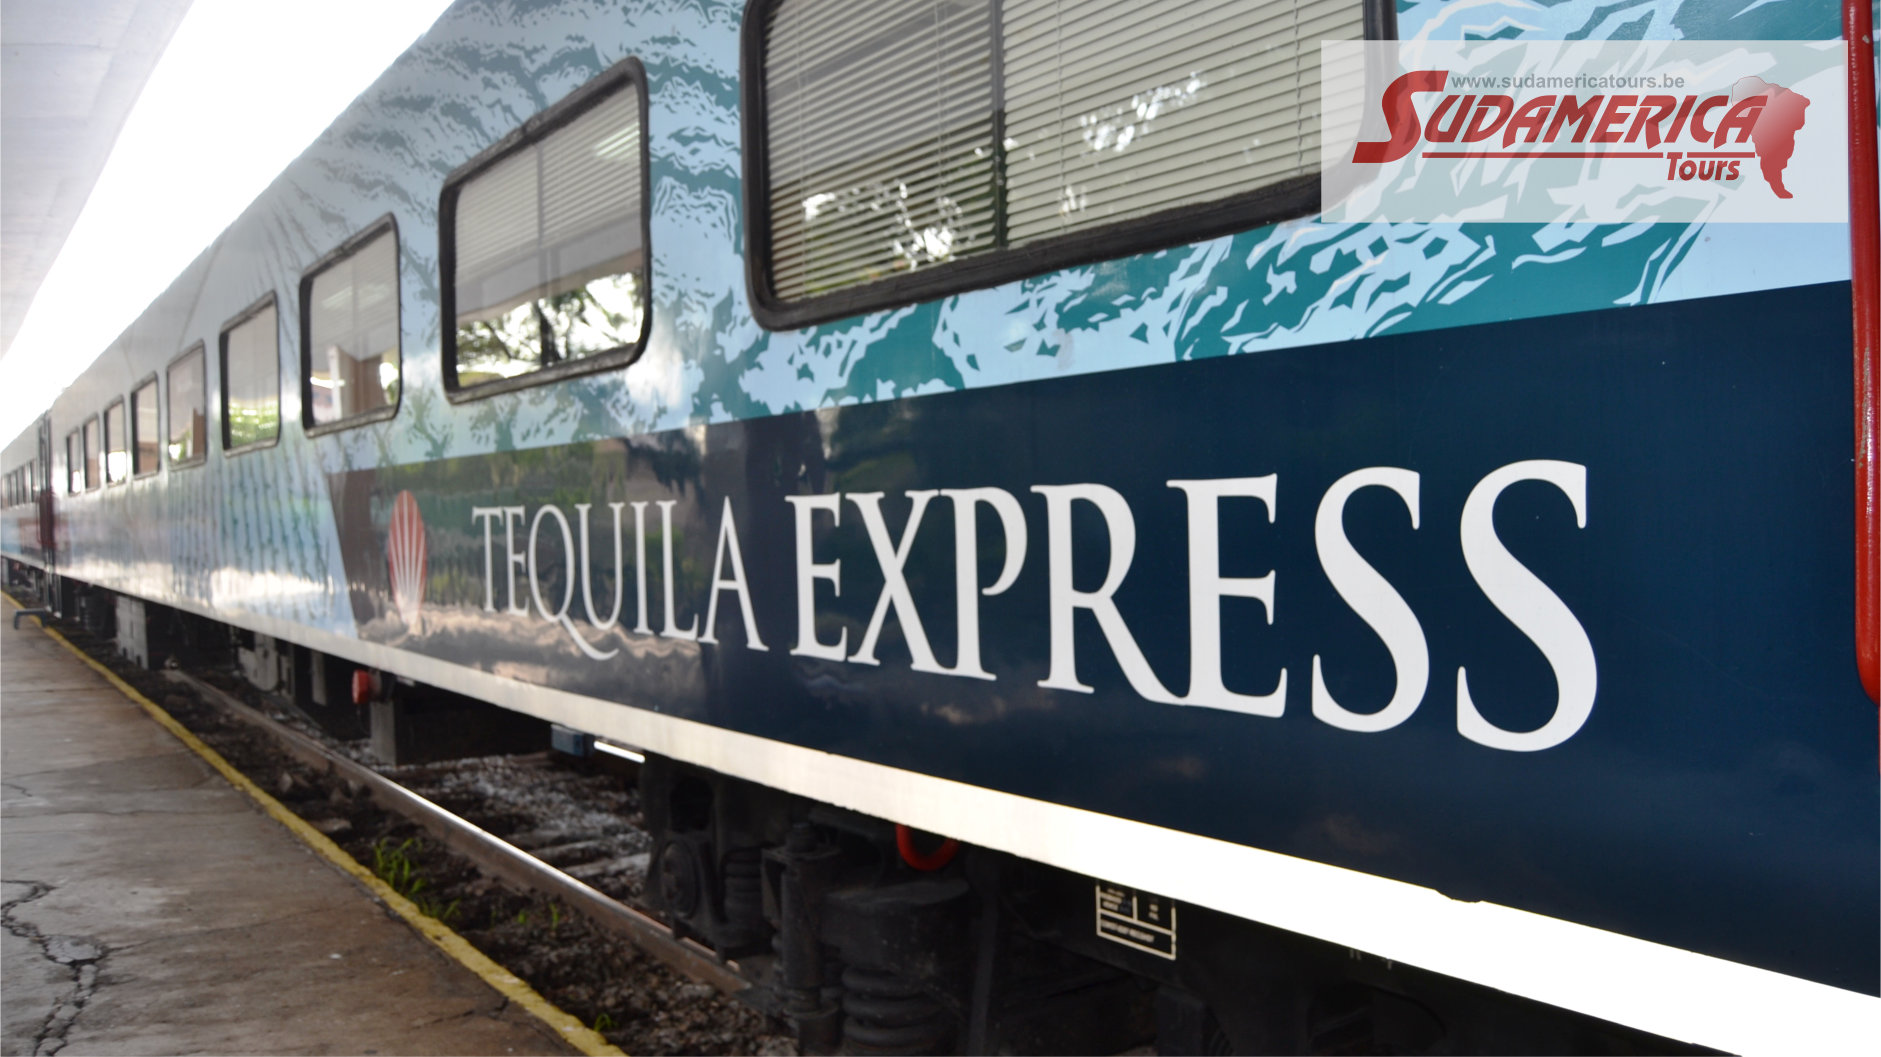 Tequila Express